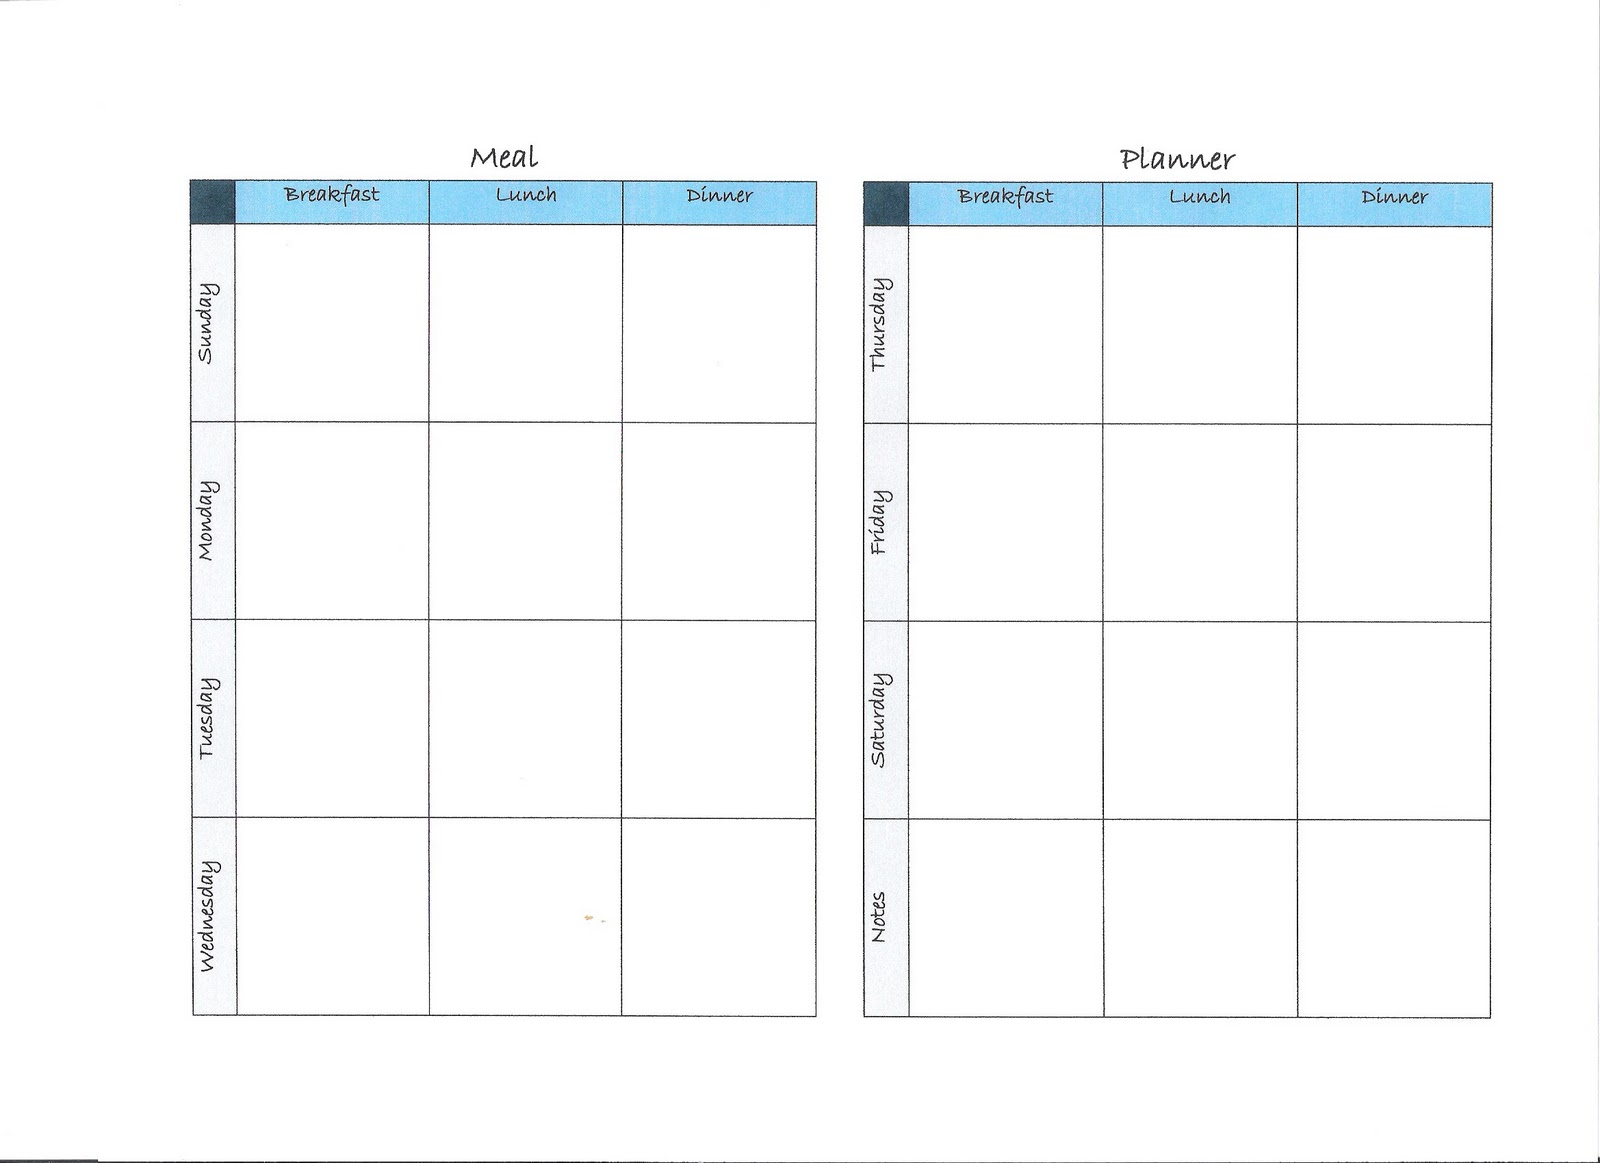 week by week planner template - download free weekly meals planner template utorrentgospel